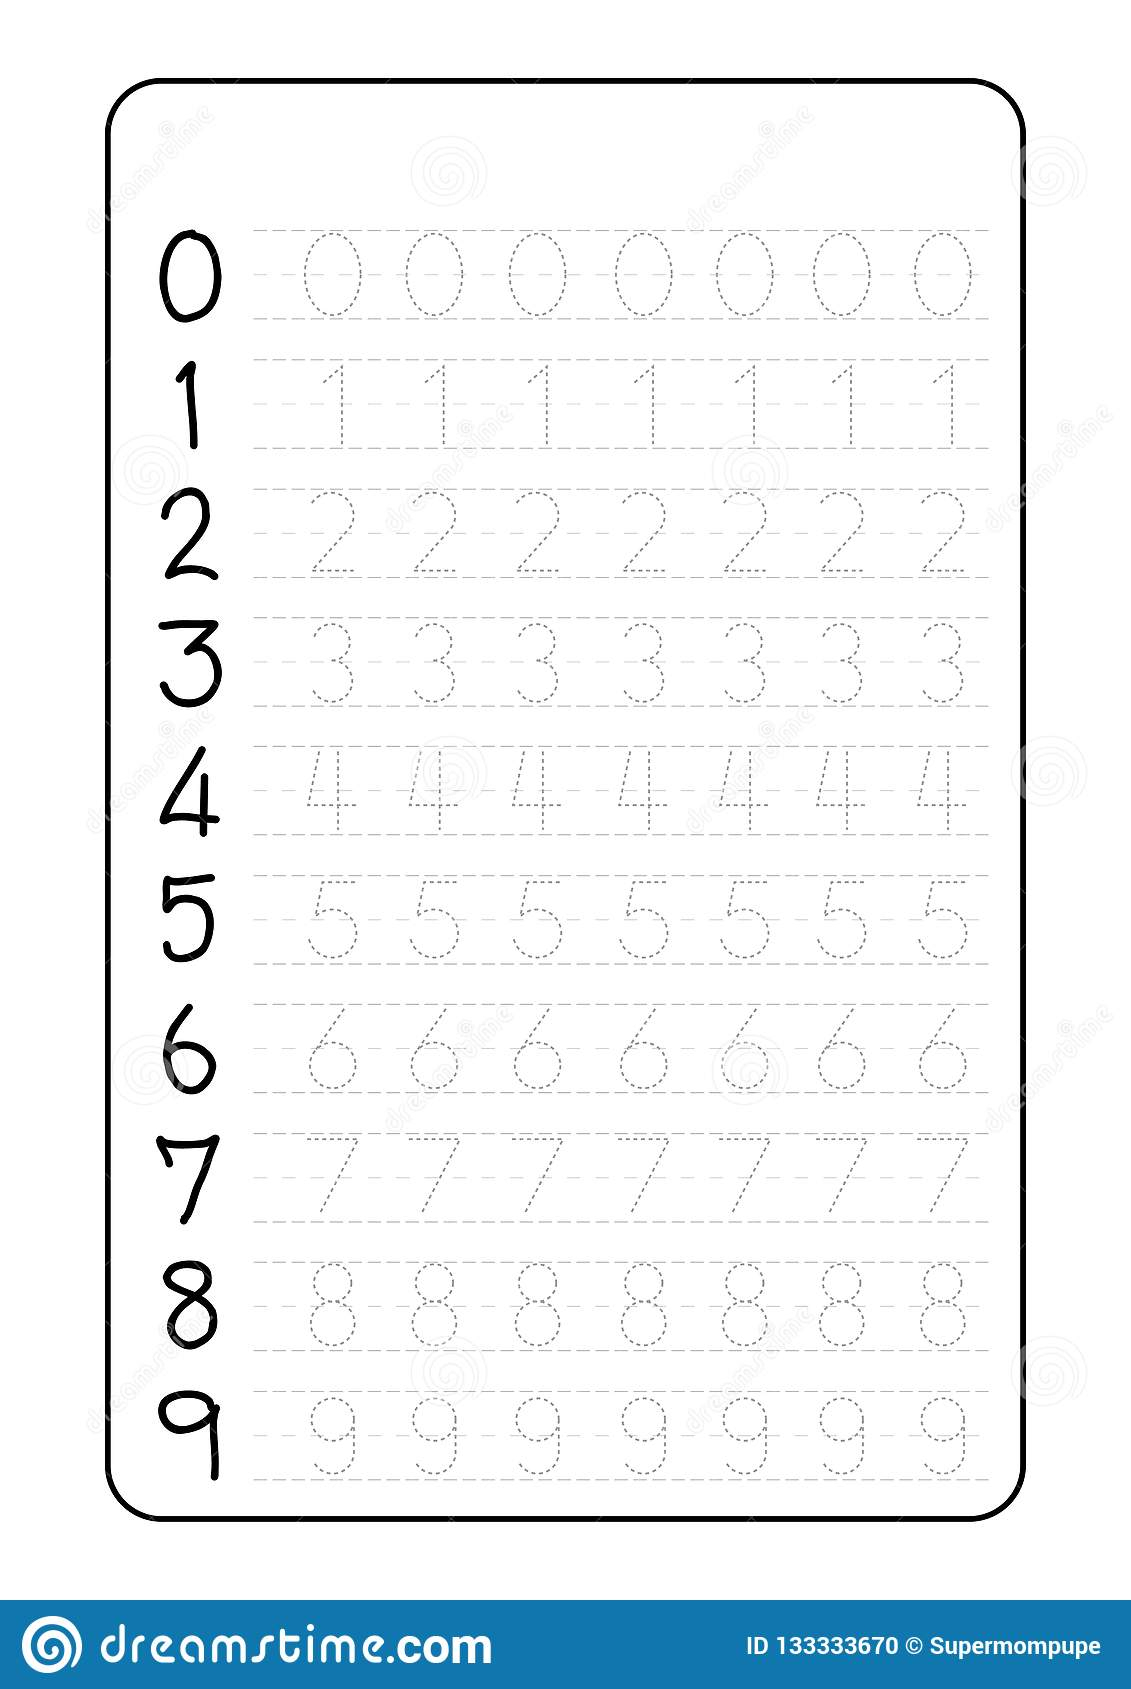 Alphabet Letters Tracing Worksheet With Alphabet Letters inside Alphabet Number Tracing